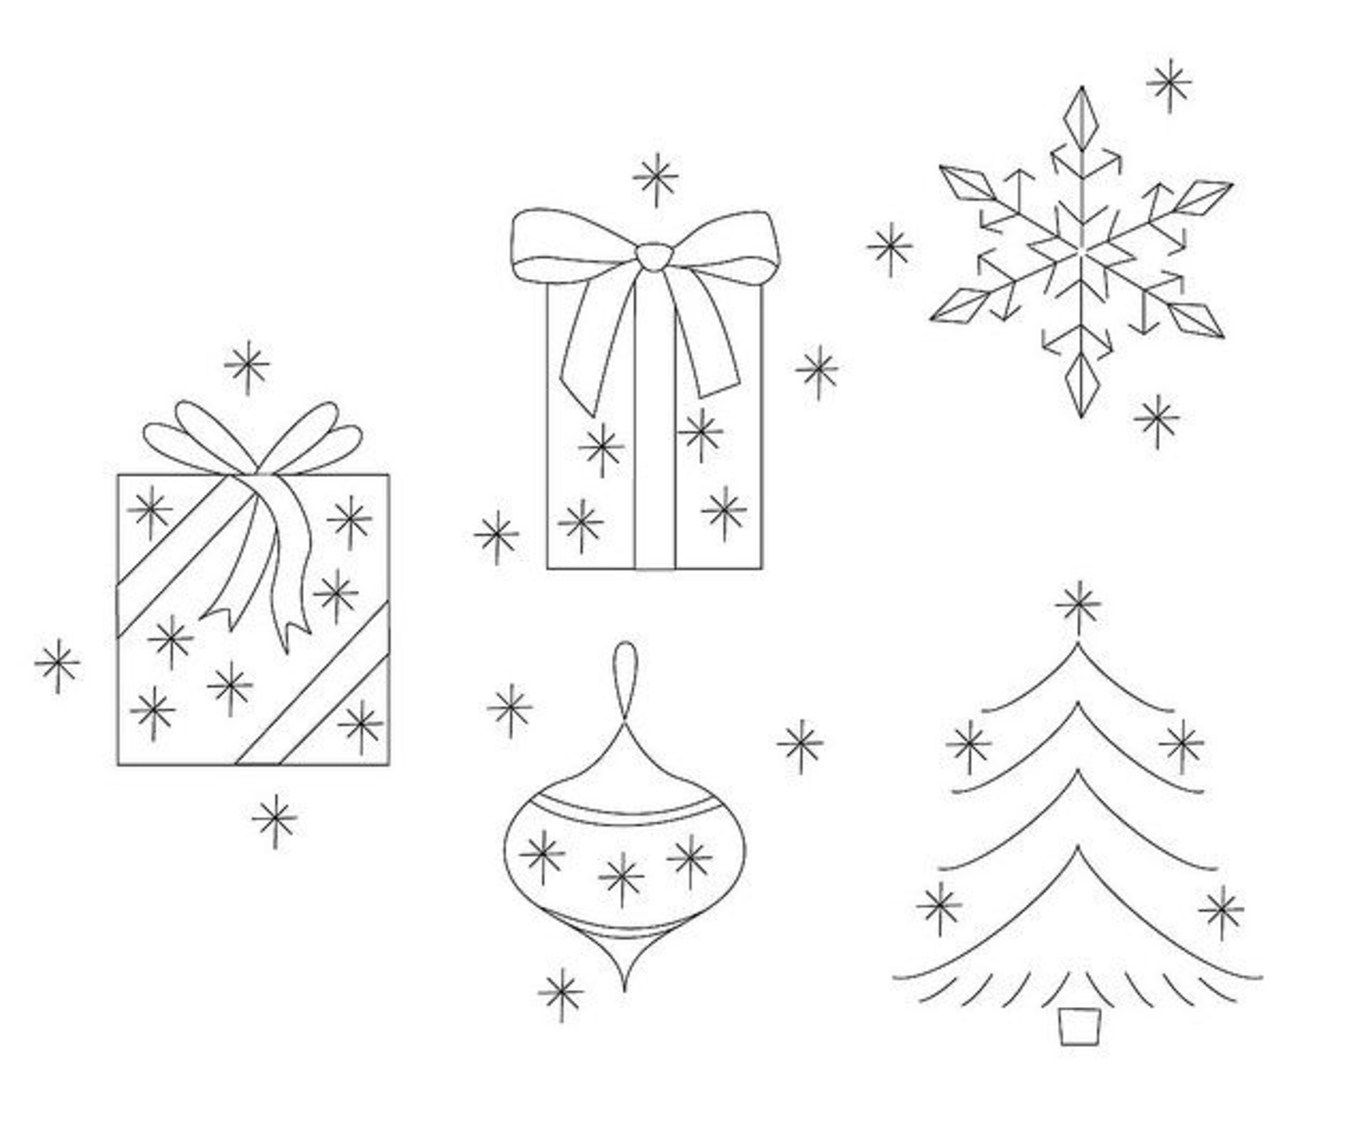 Christmas Embroidery Patterns 98577375 Christmas Embroidery Patterns What Katie Does Via Flickr